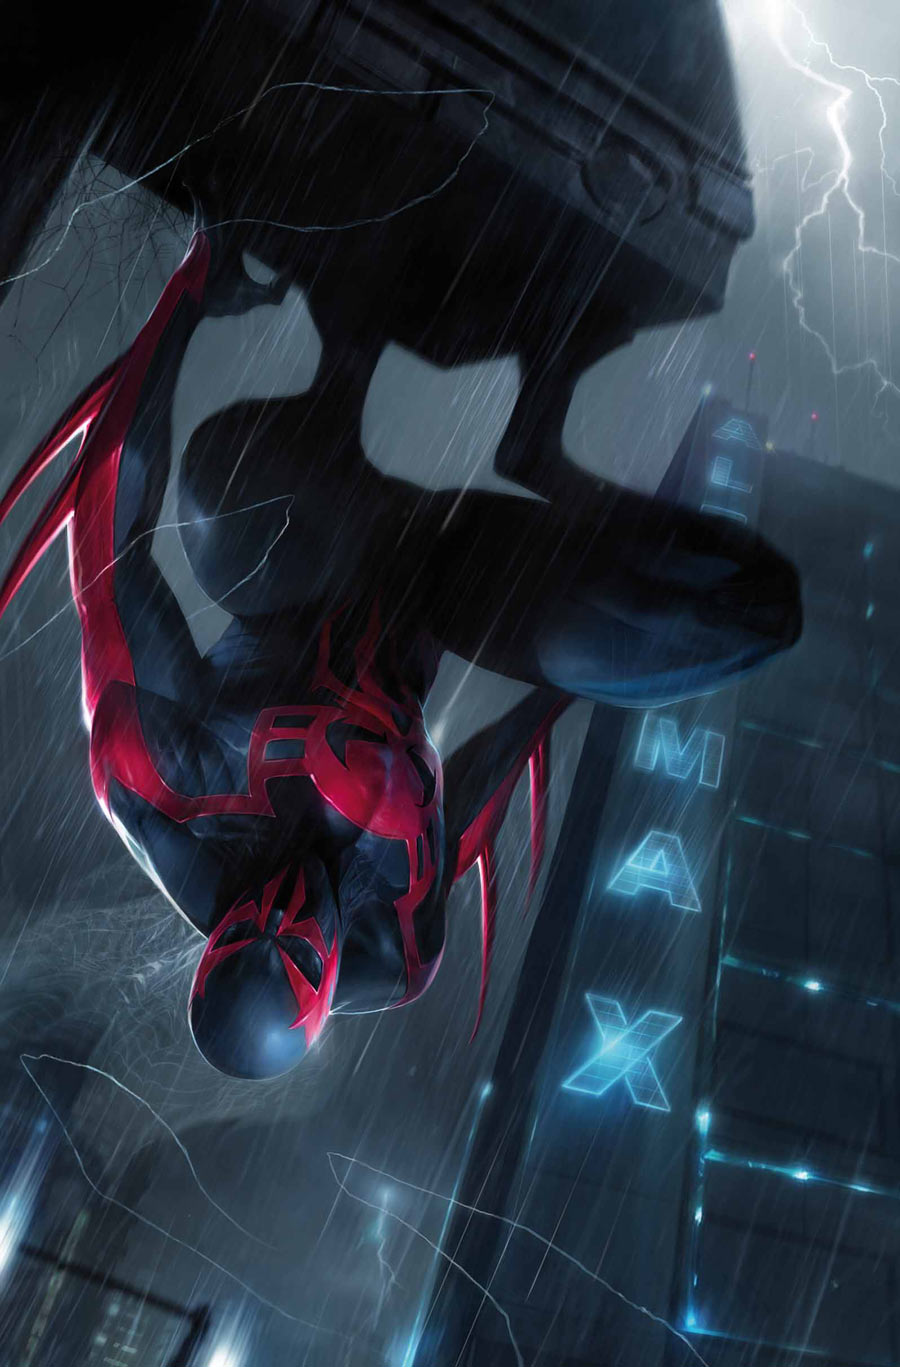 Spider-Man 2099 screenshots, images and pictures - Comic Vine